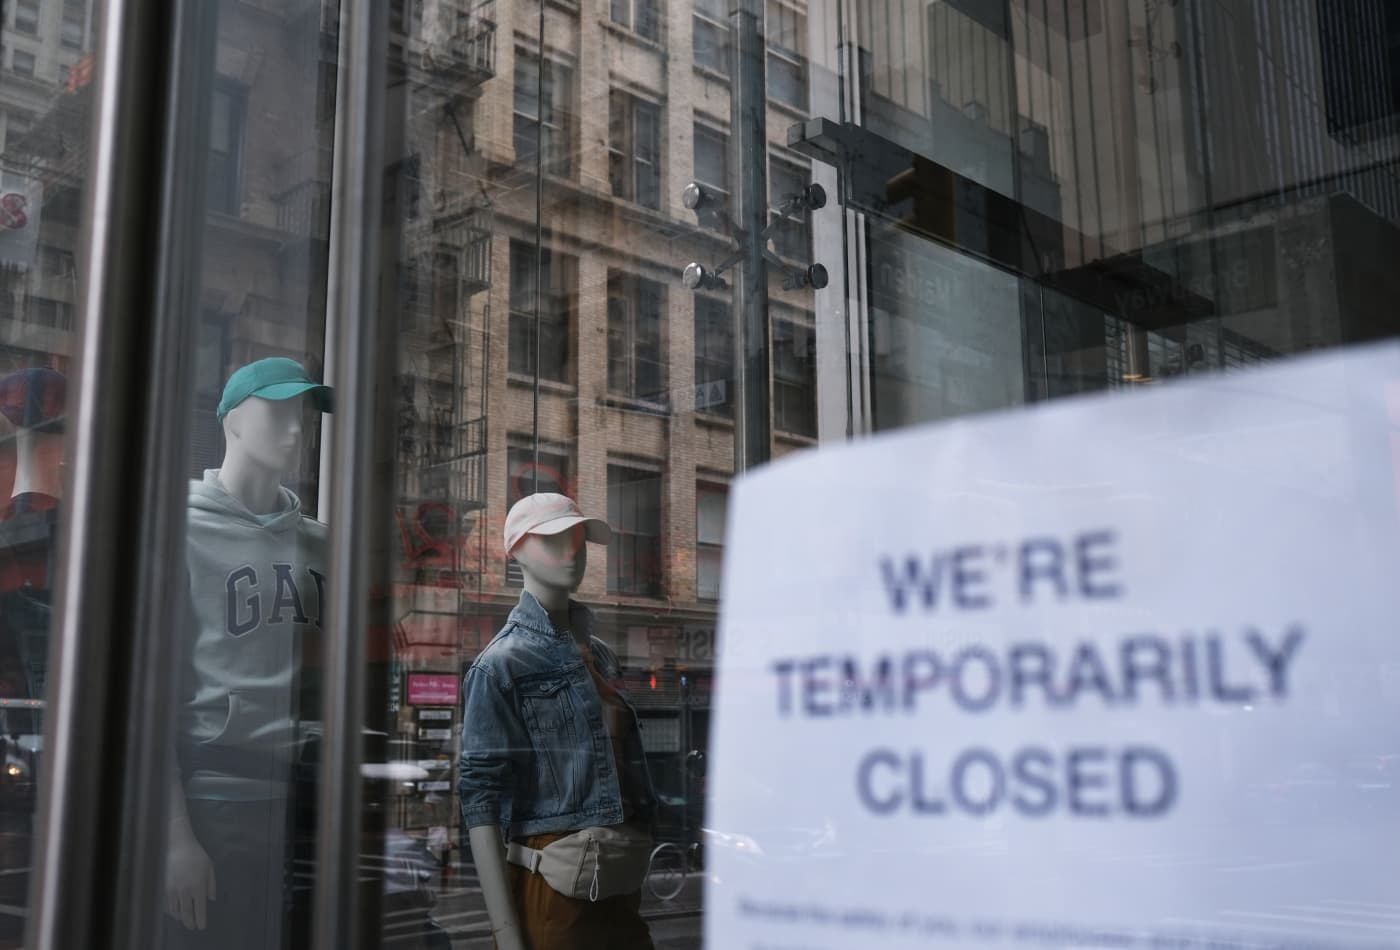 Here's why the real unemployment rate may be higher than reported